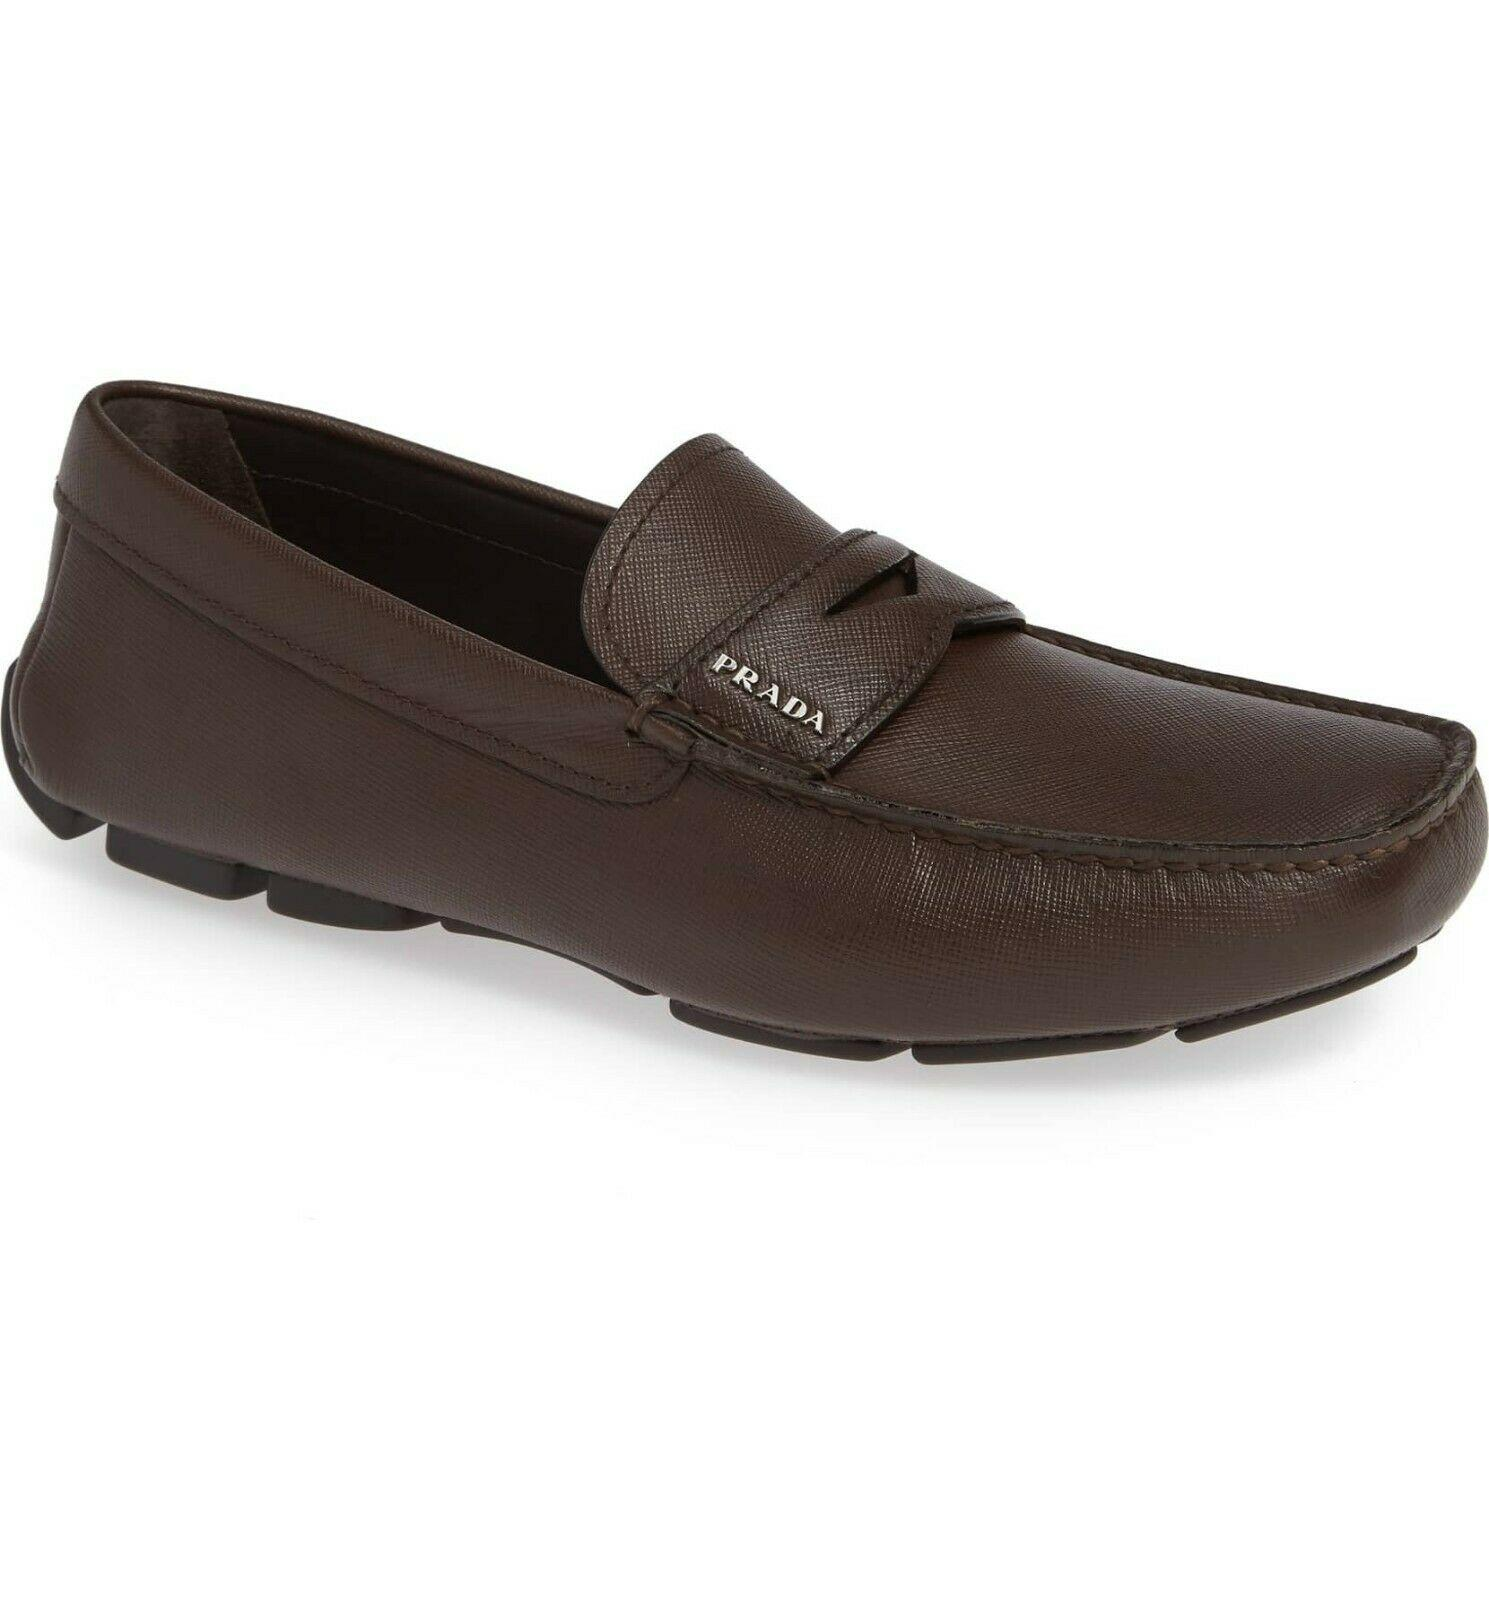 PRADA Brown Saffiano Leather Loafers Shoes Moccasins 8 Uk-9 US Loafers